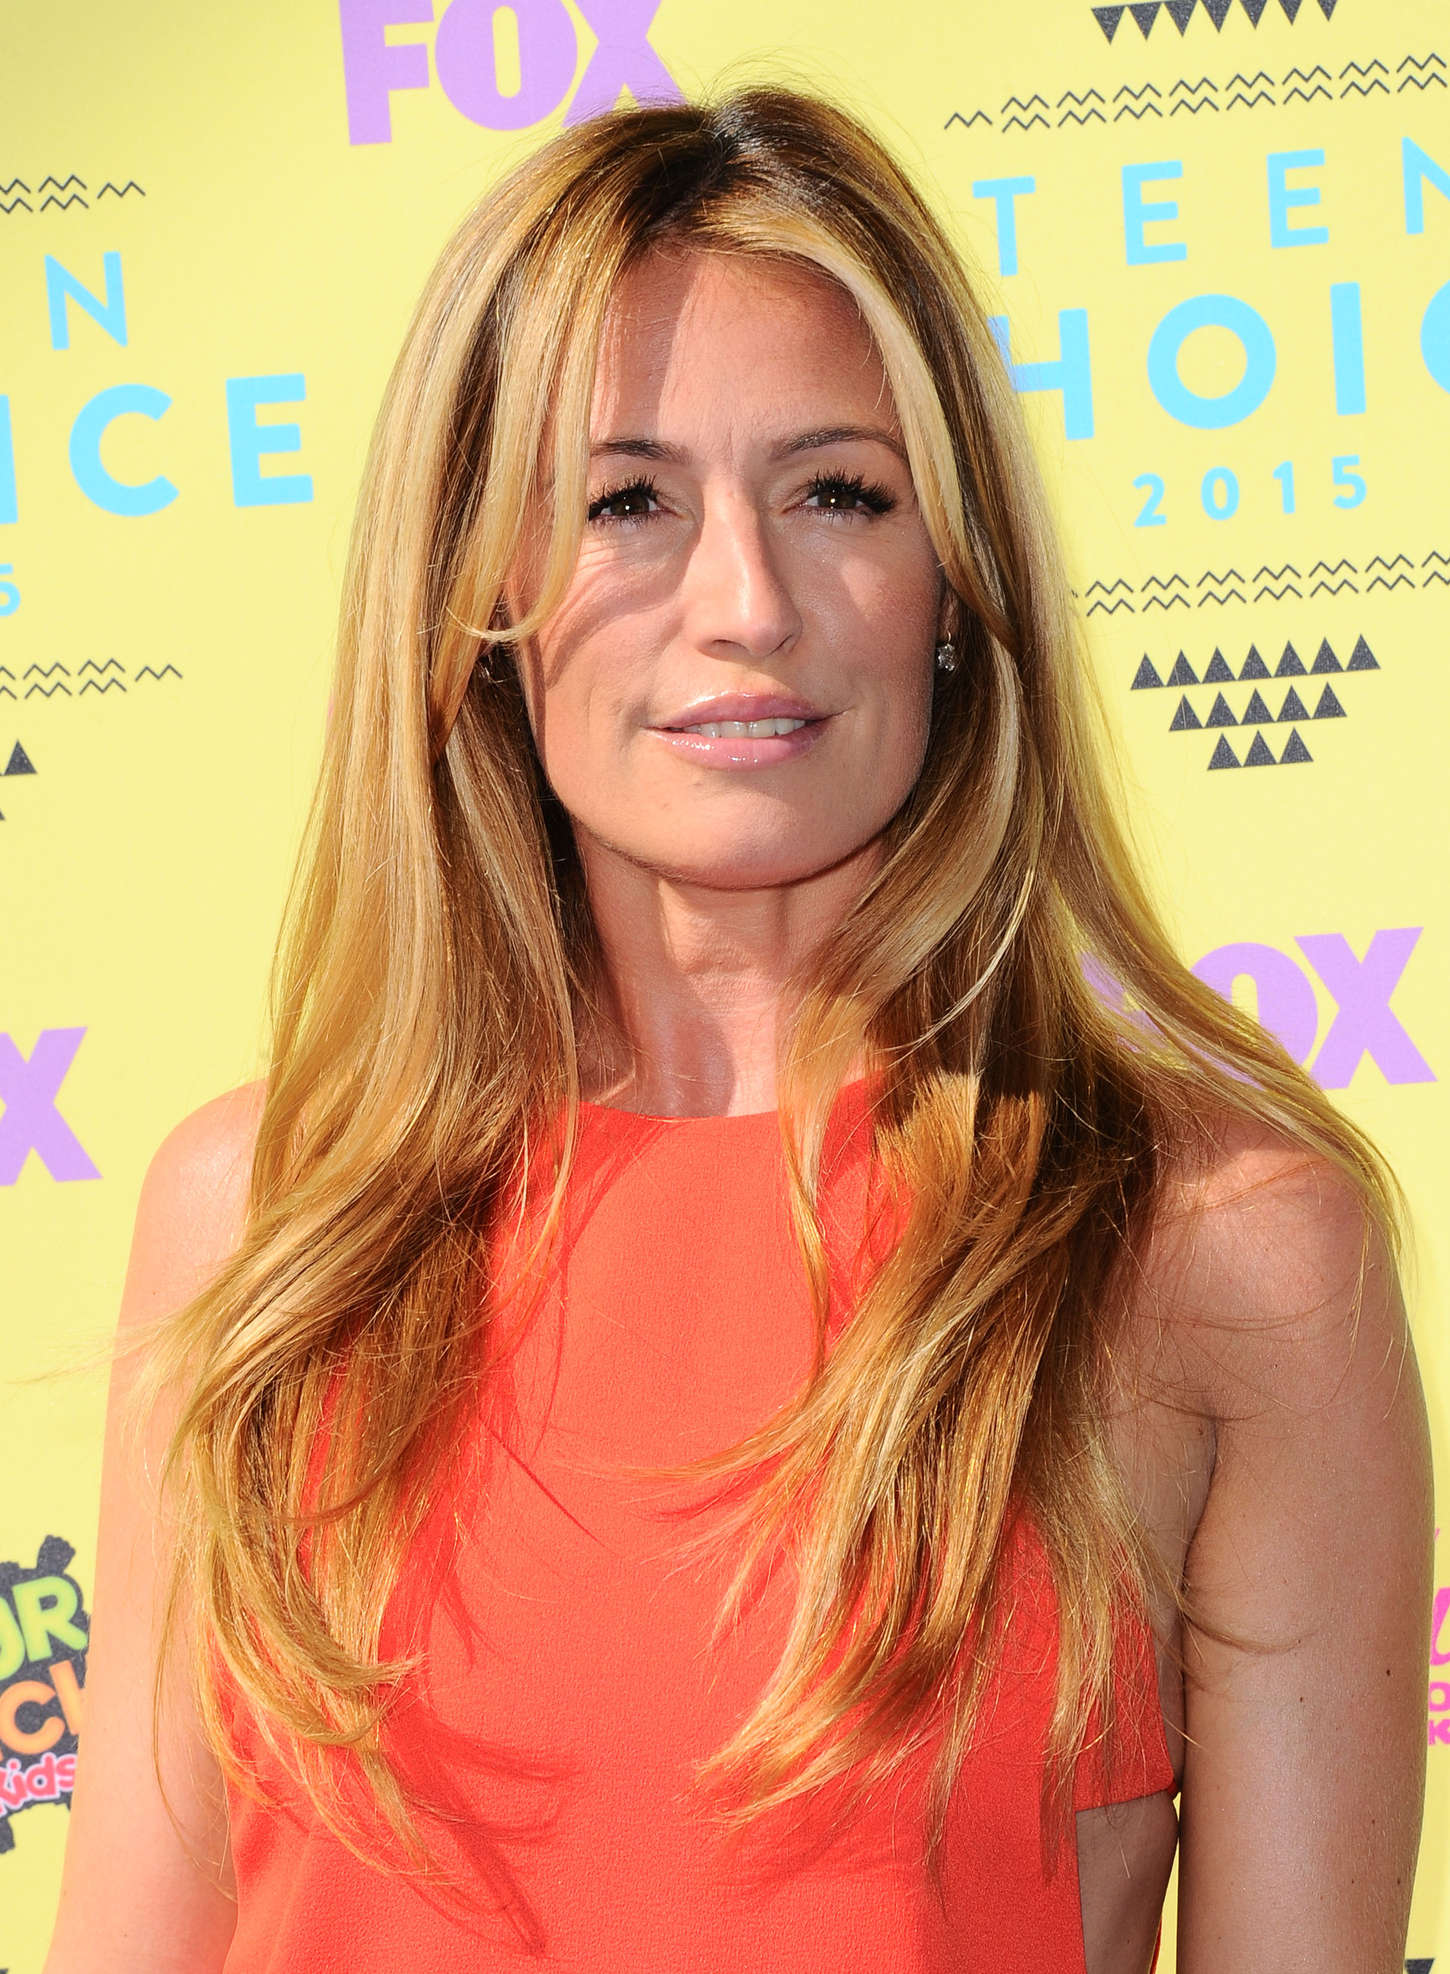 cat deeley   2015 teen choice awards in la